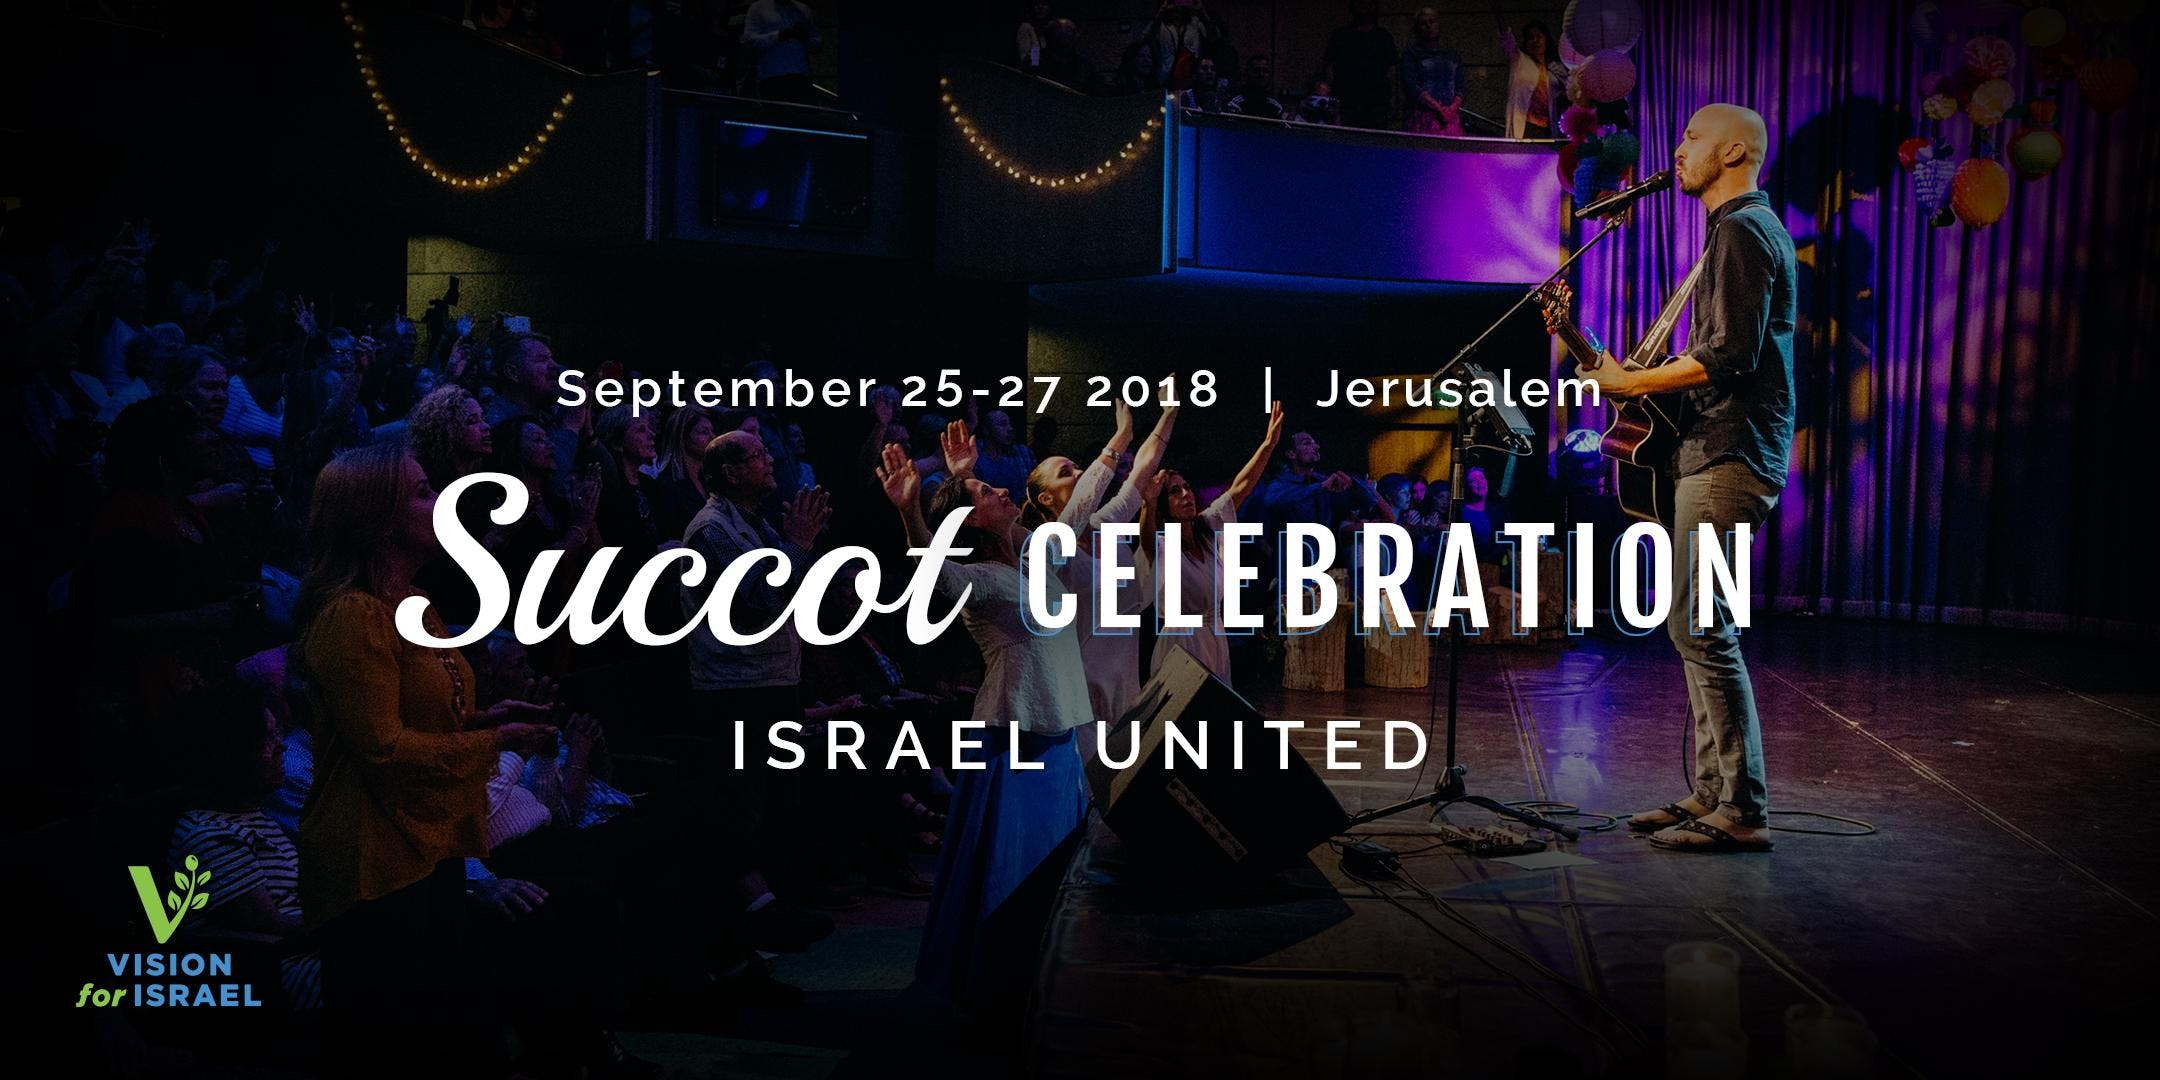 Succot Celebration 2018: Israel United